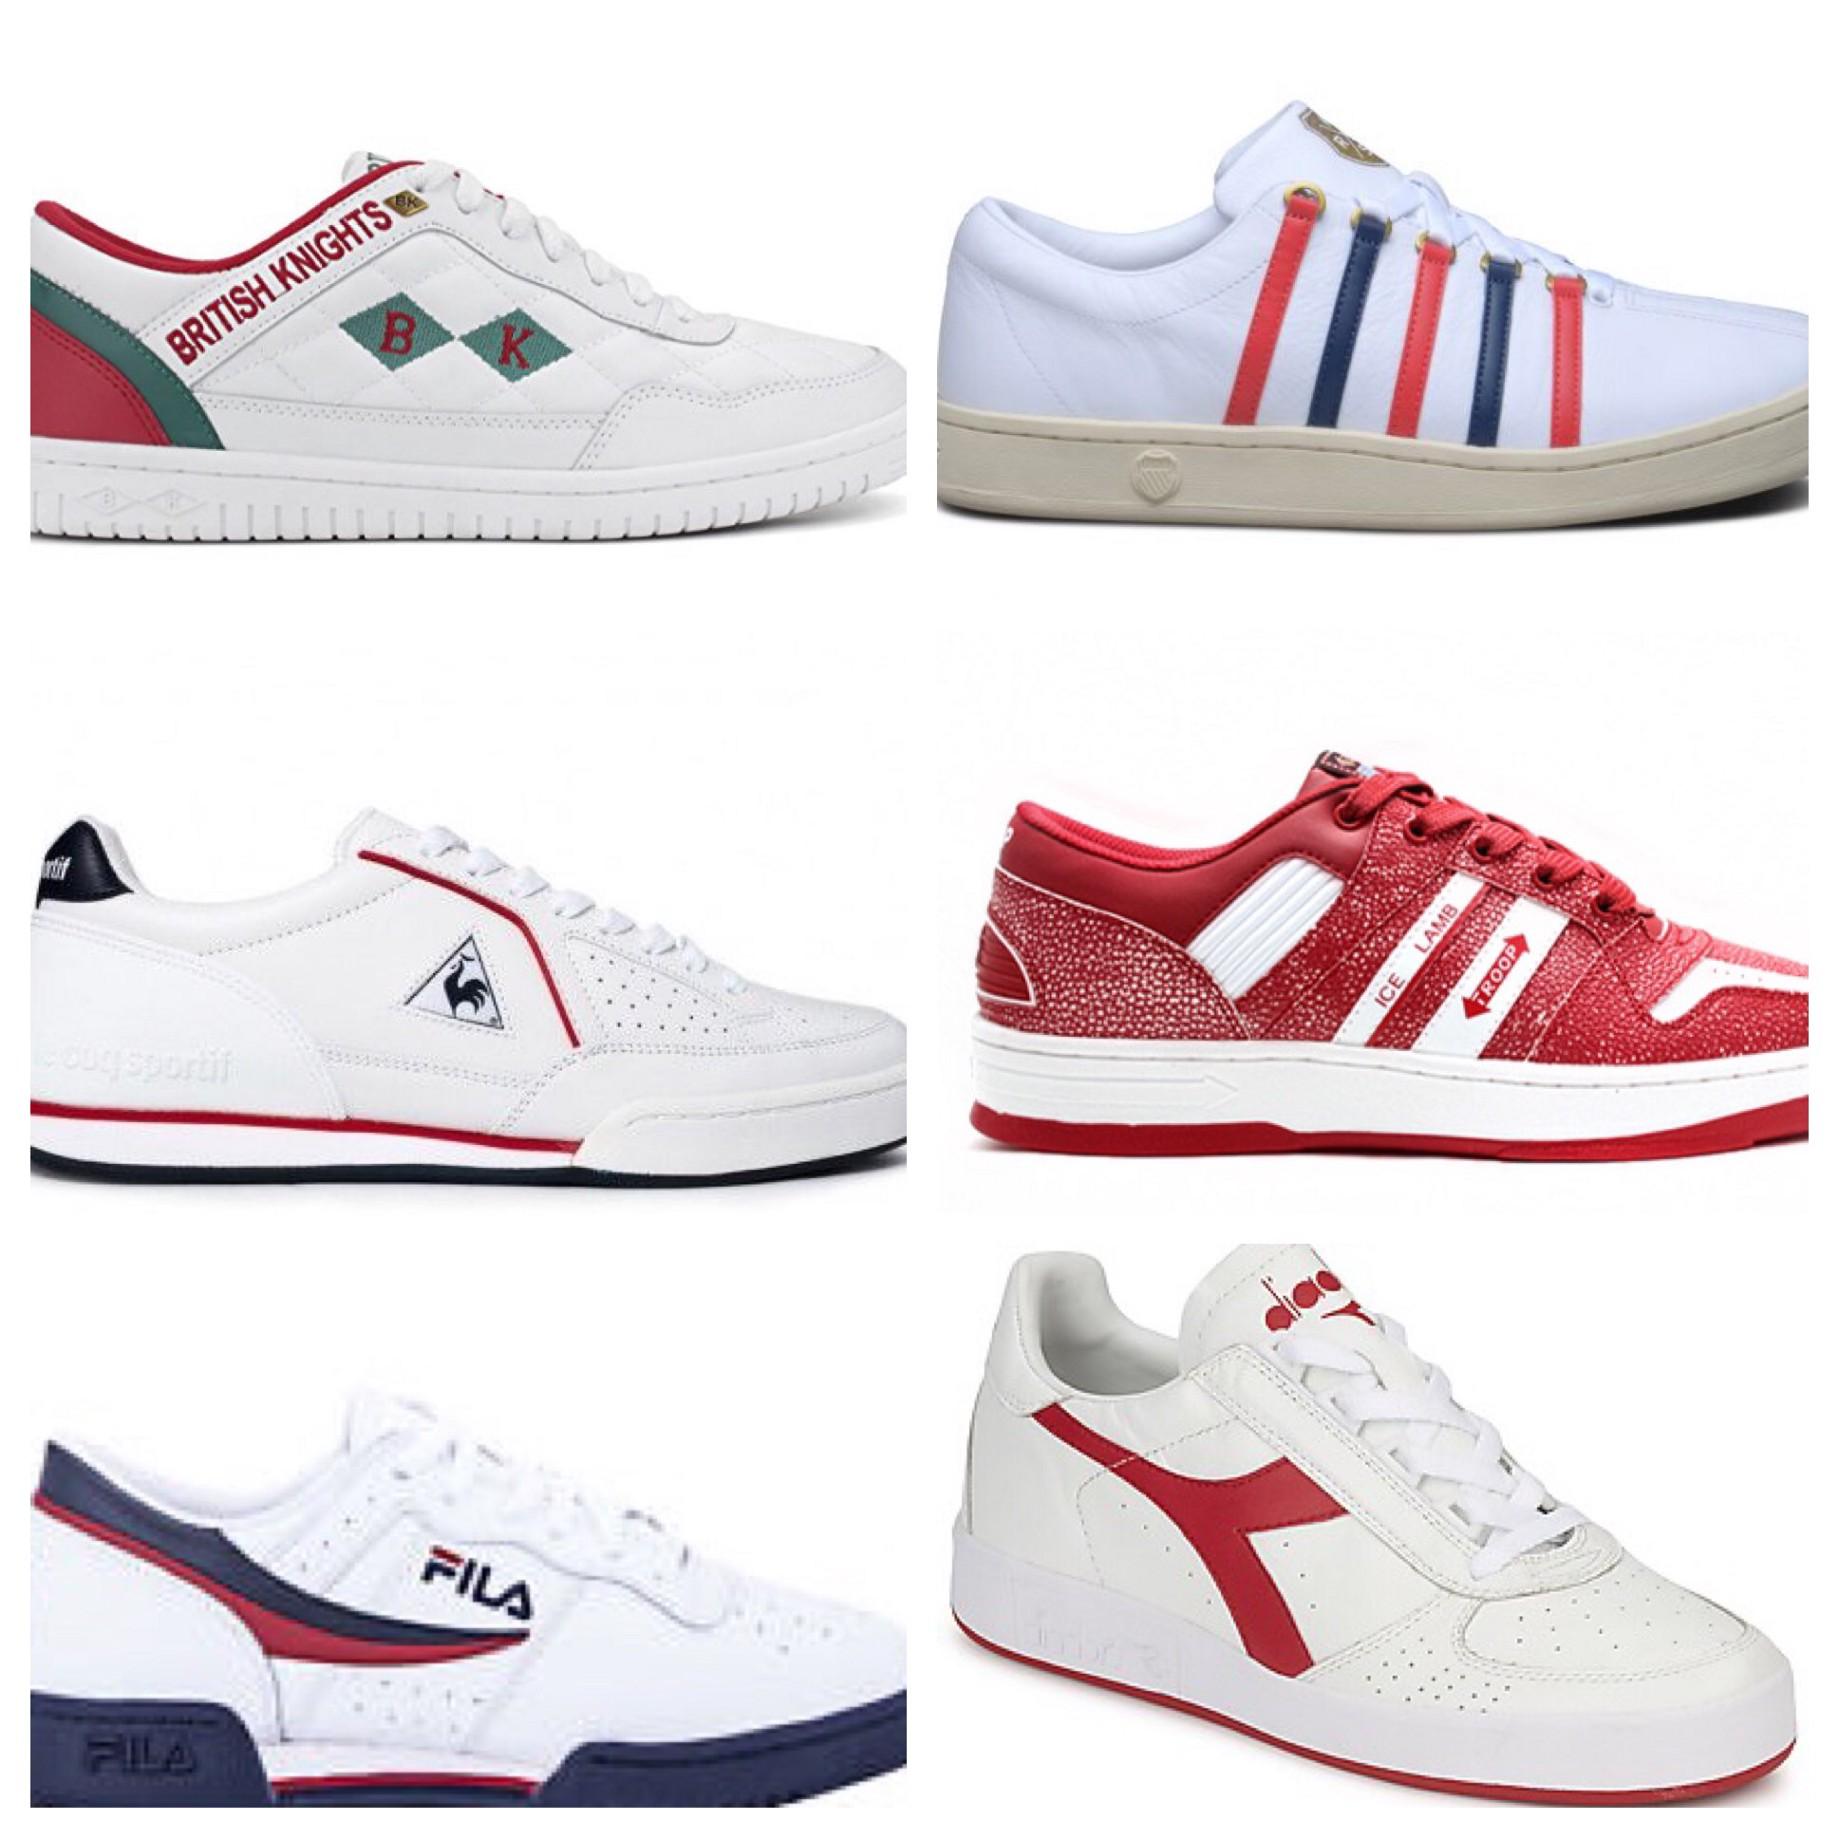 5a690bbb7 The Sneaker Boom of the 1980s - The Brothers - Medium